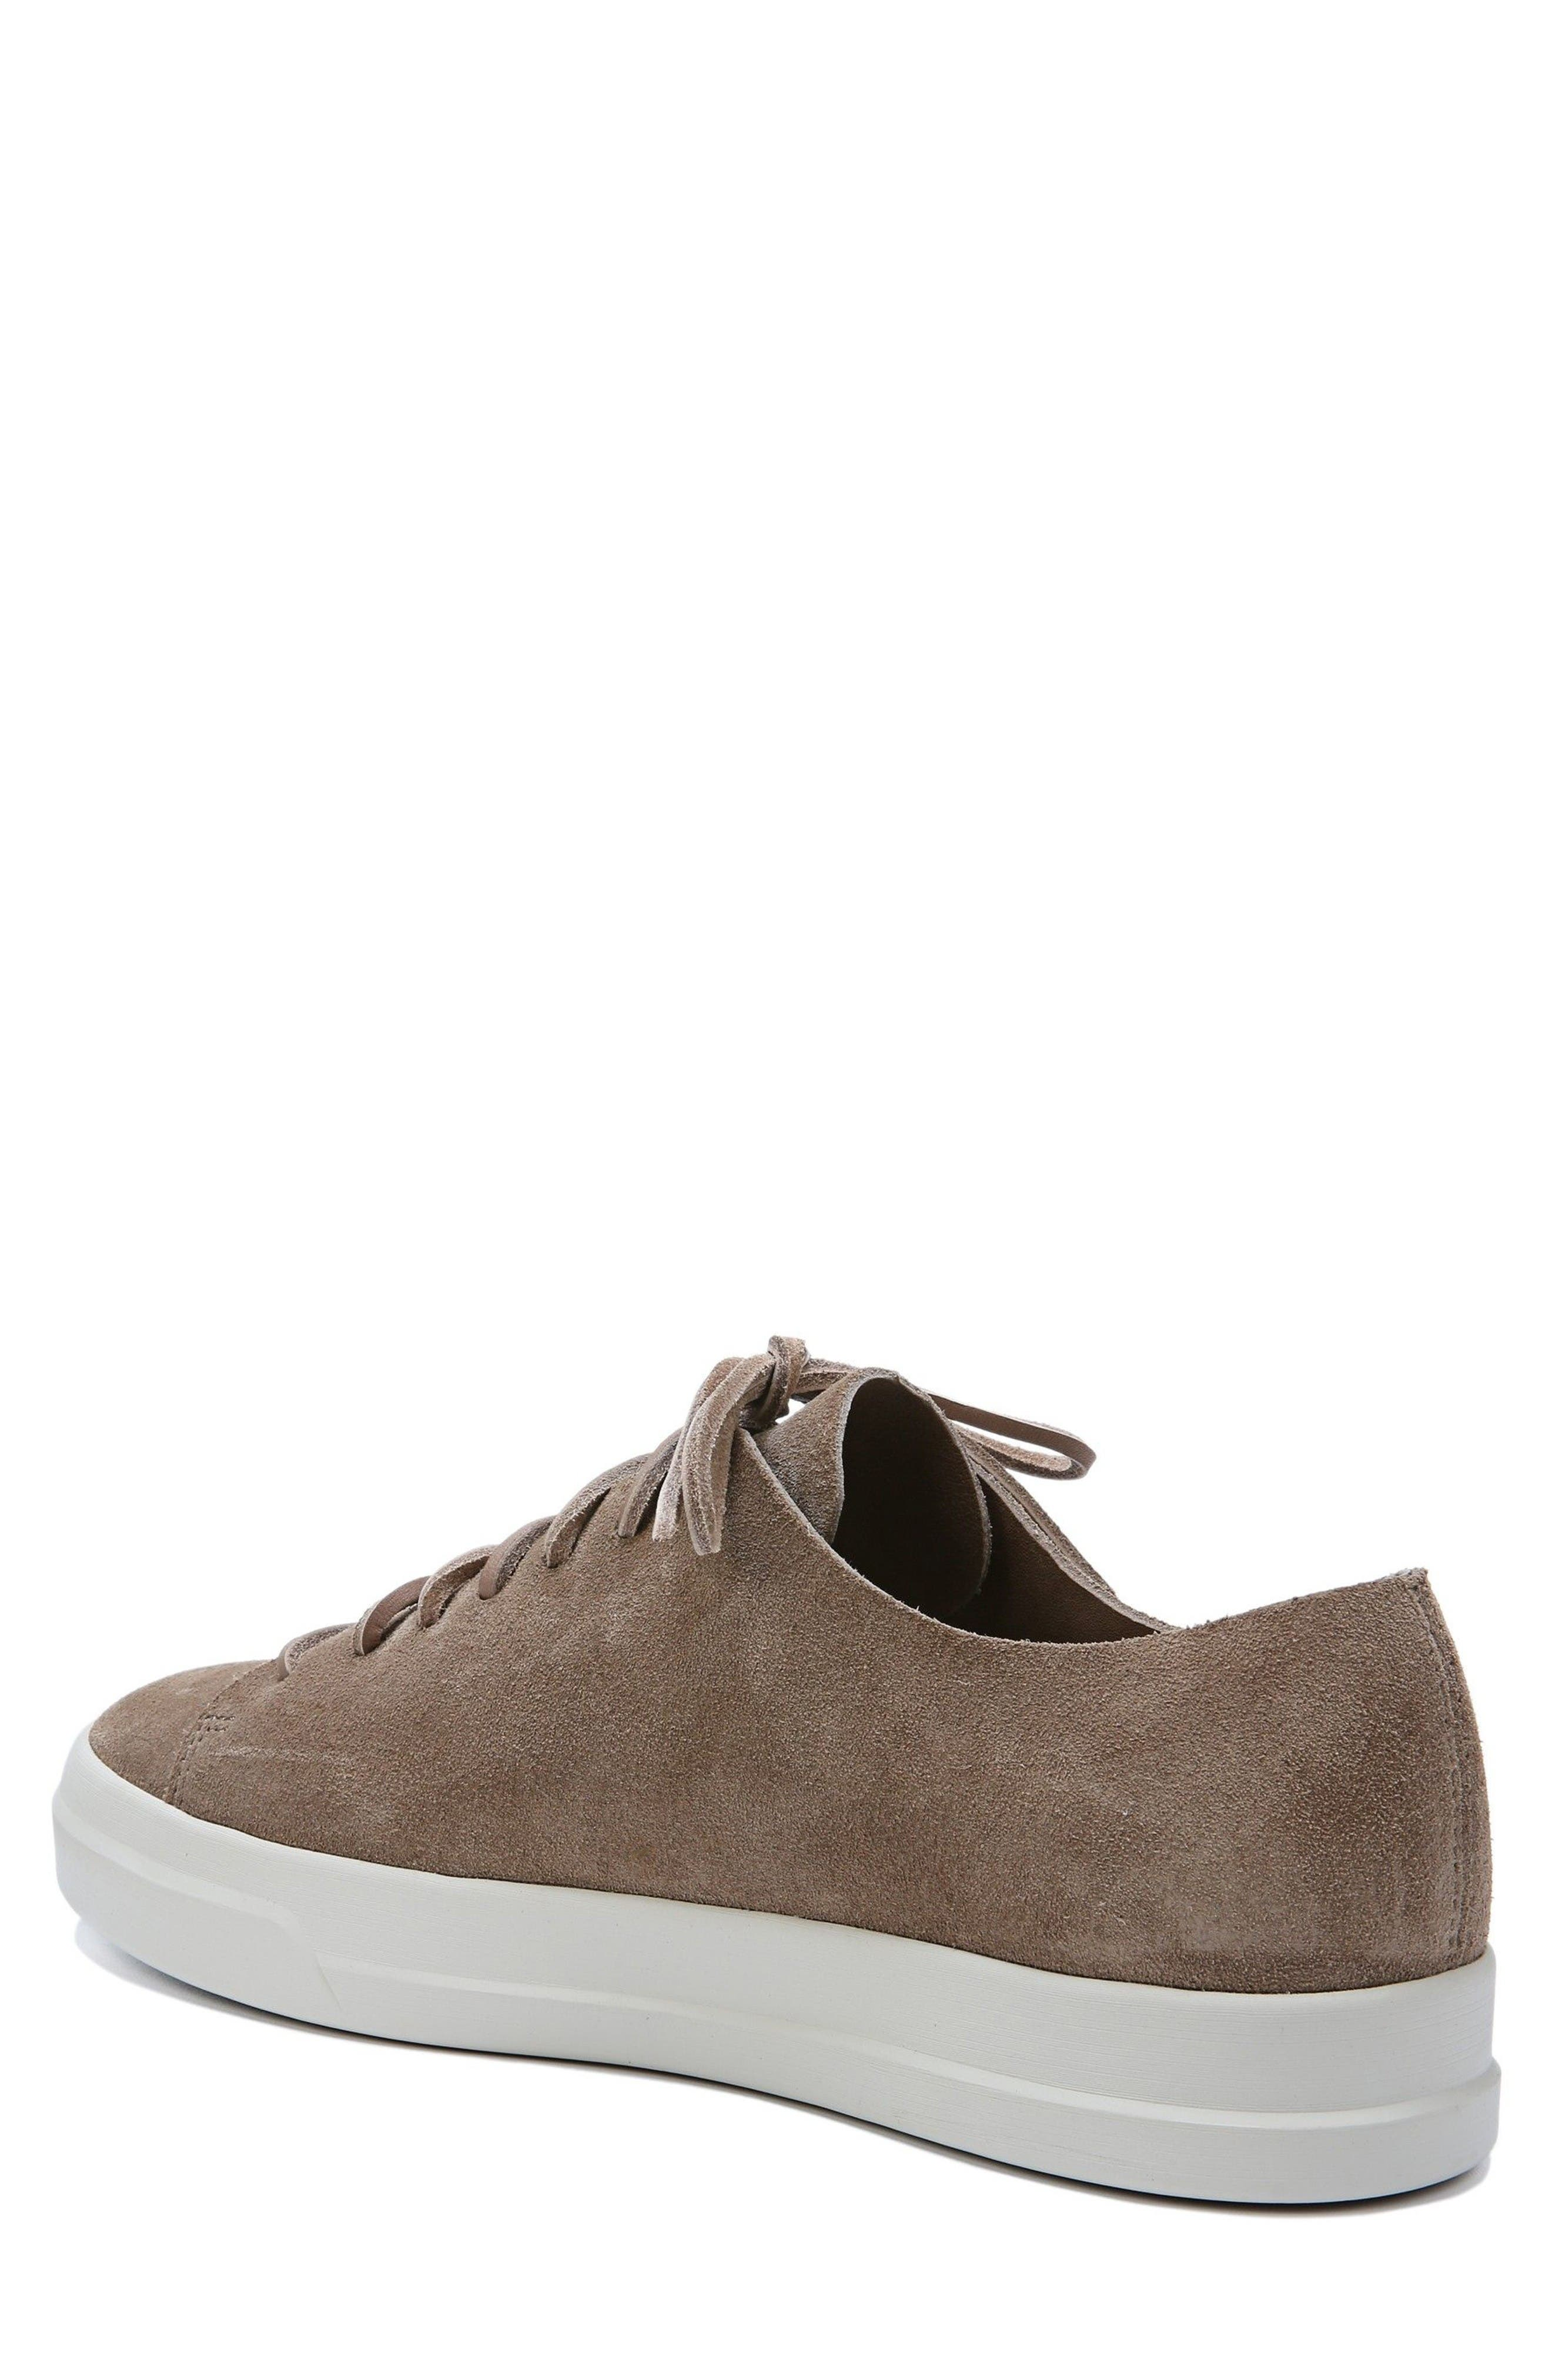 Copeland Sneaker,                             Alternate thumbnail 2, color,                             Flint Tan Suede